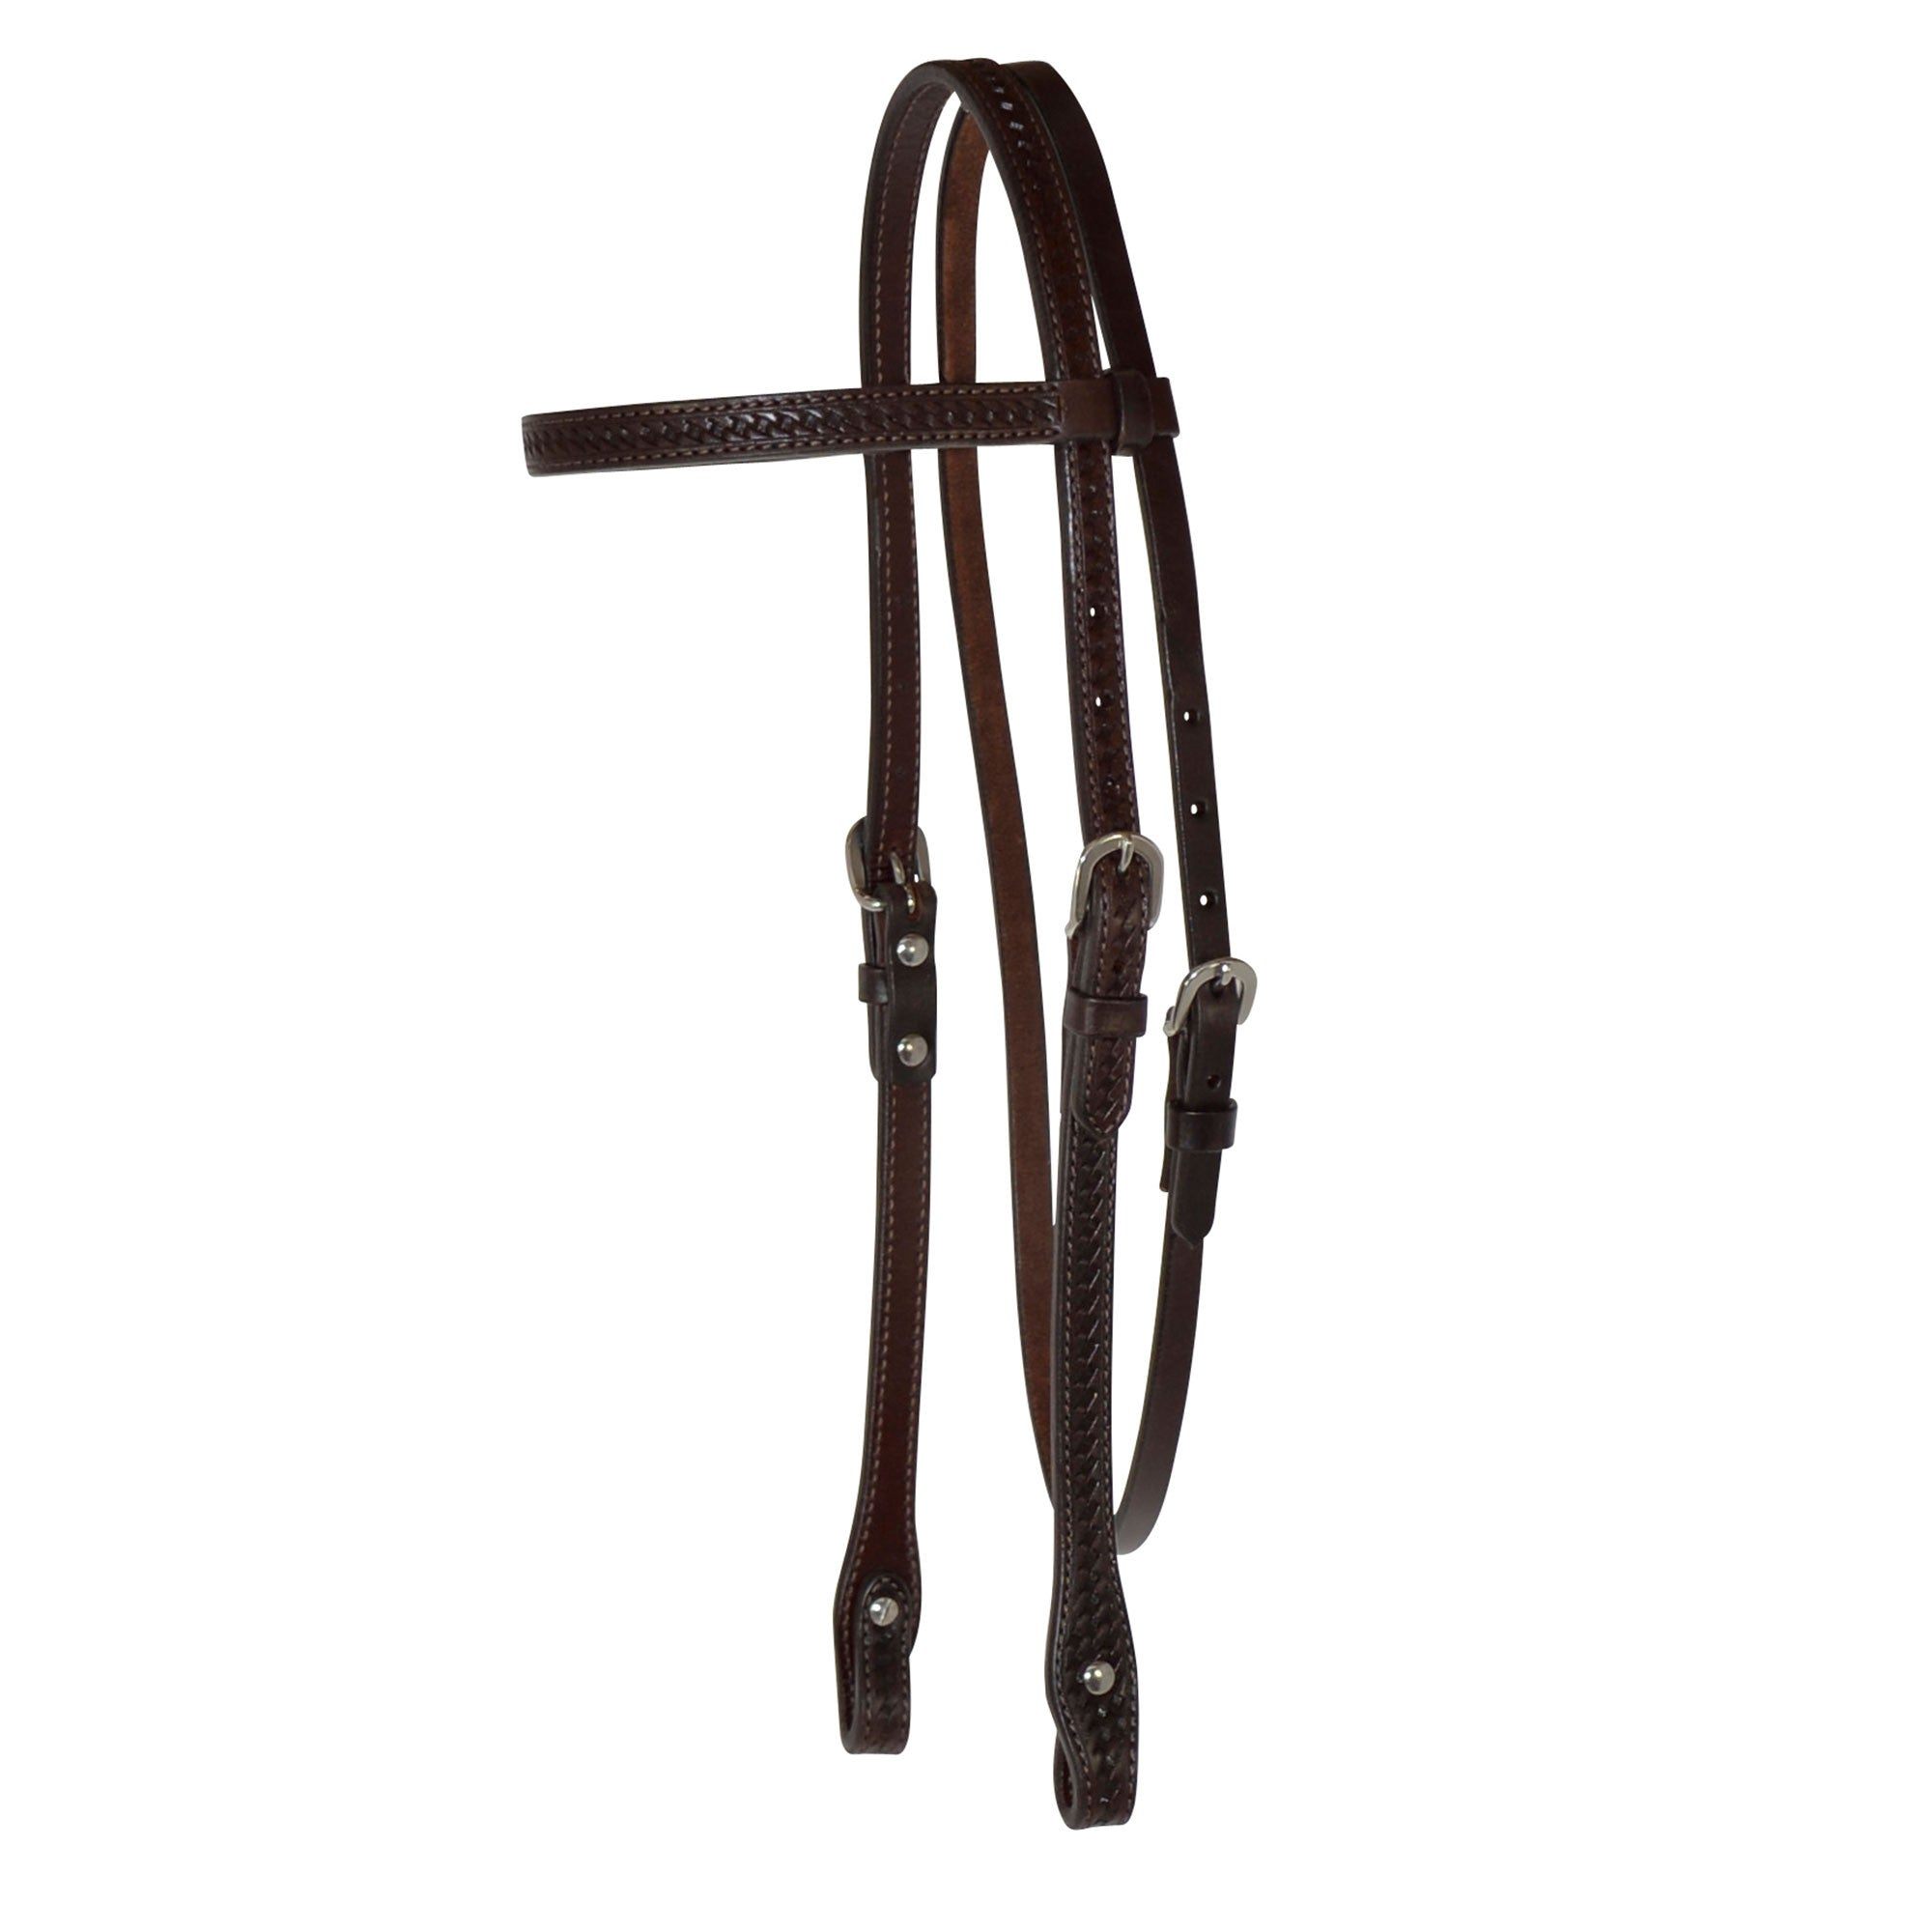 "⅝"" – Basketweave Tooled Browband Headstall"